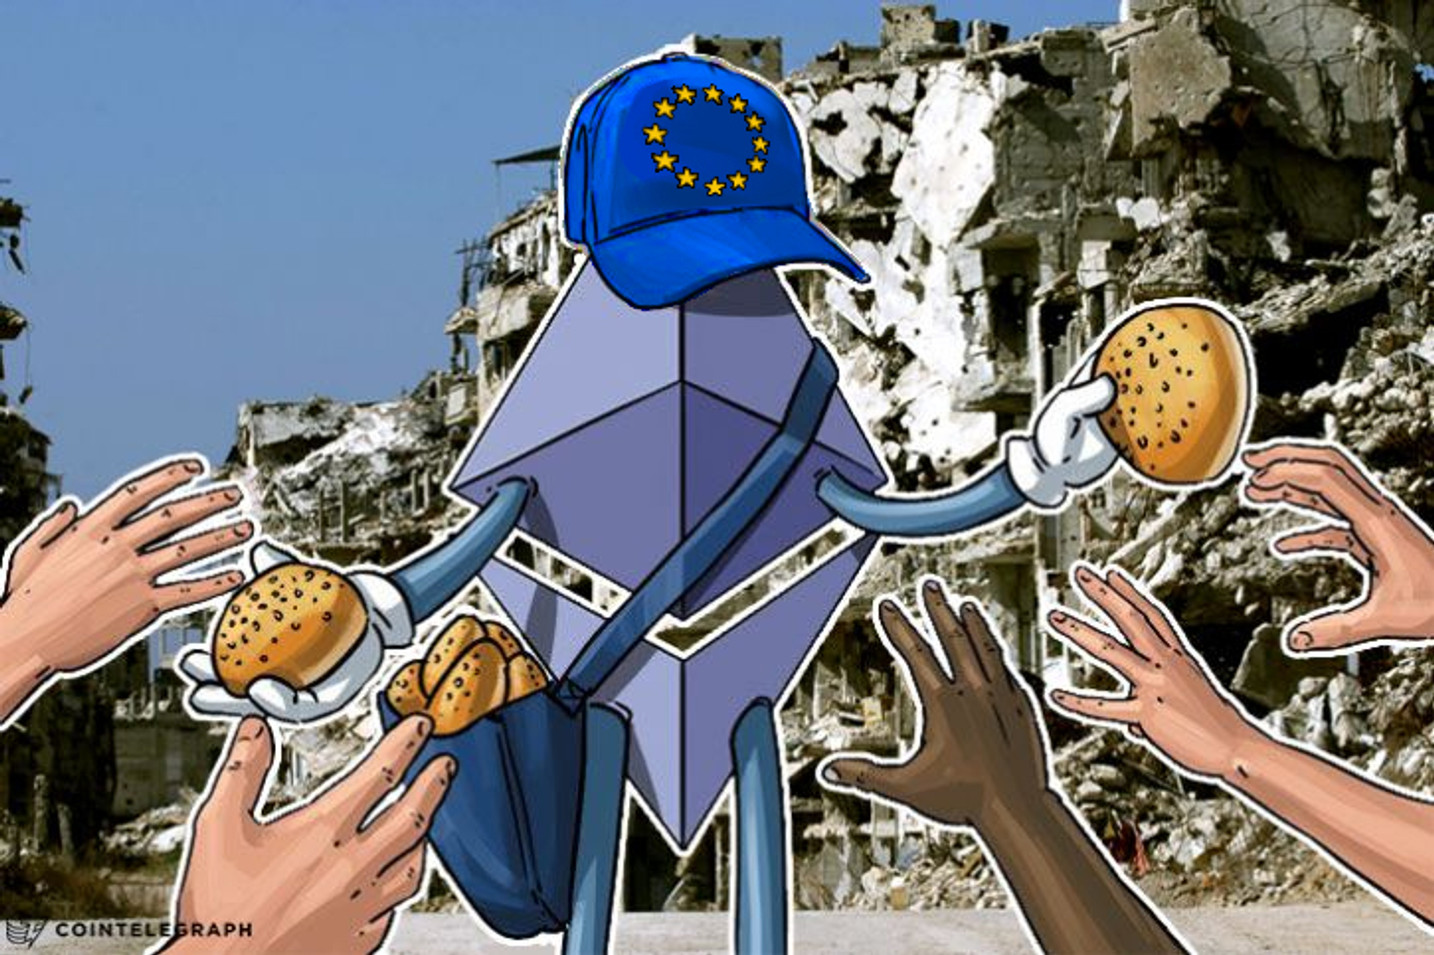 $1 Mln Ethereum Plans: European Union Eyes Helping Refugees with Blockchain